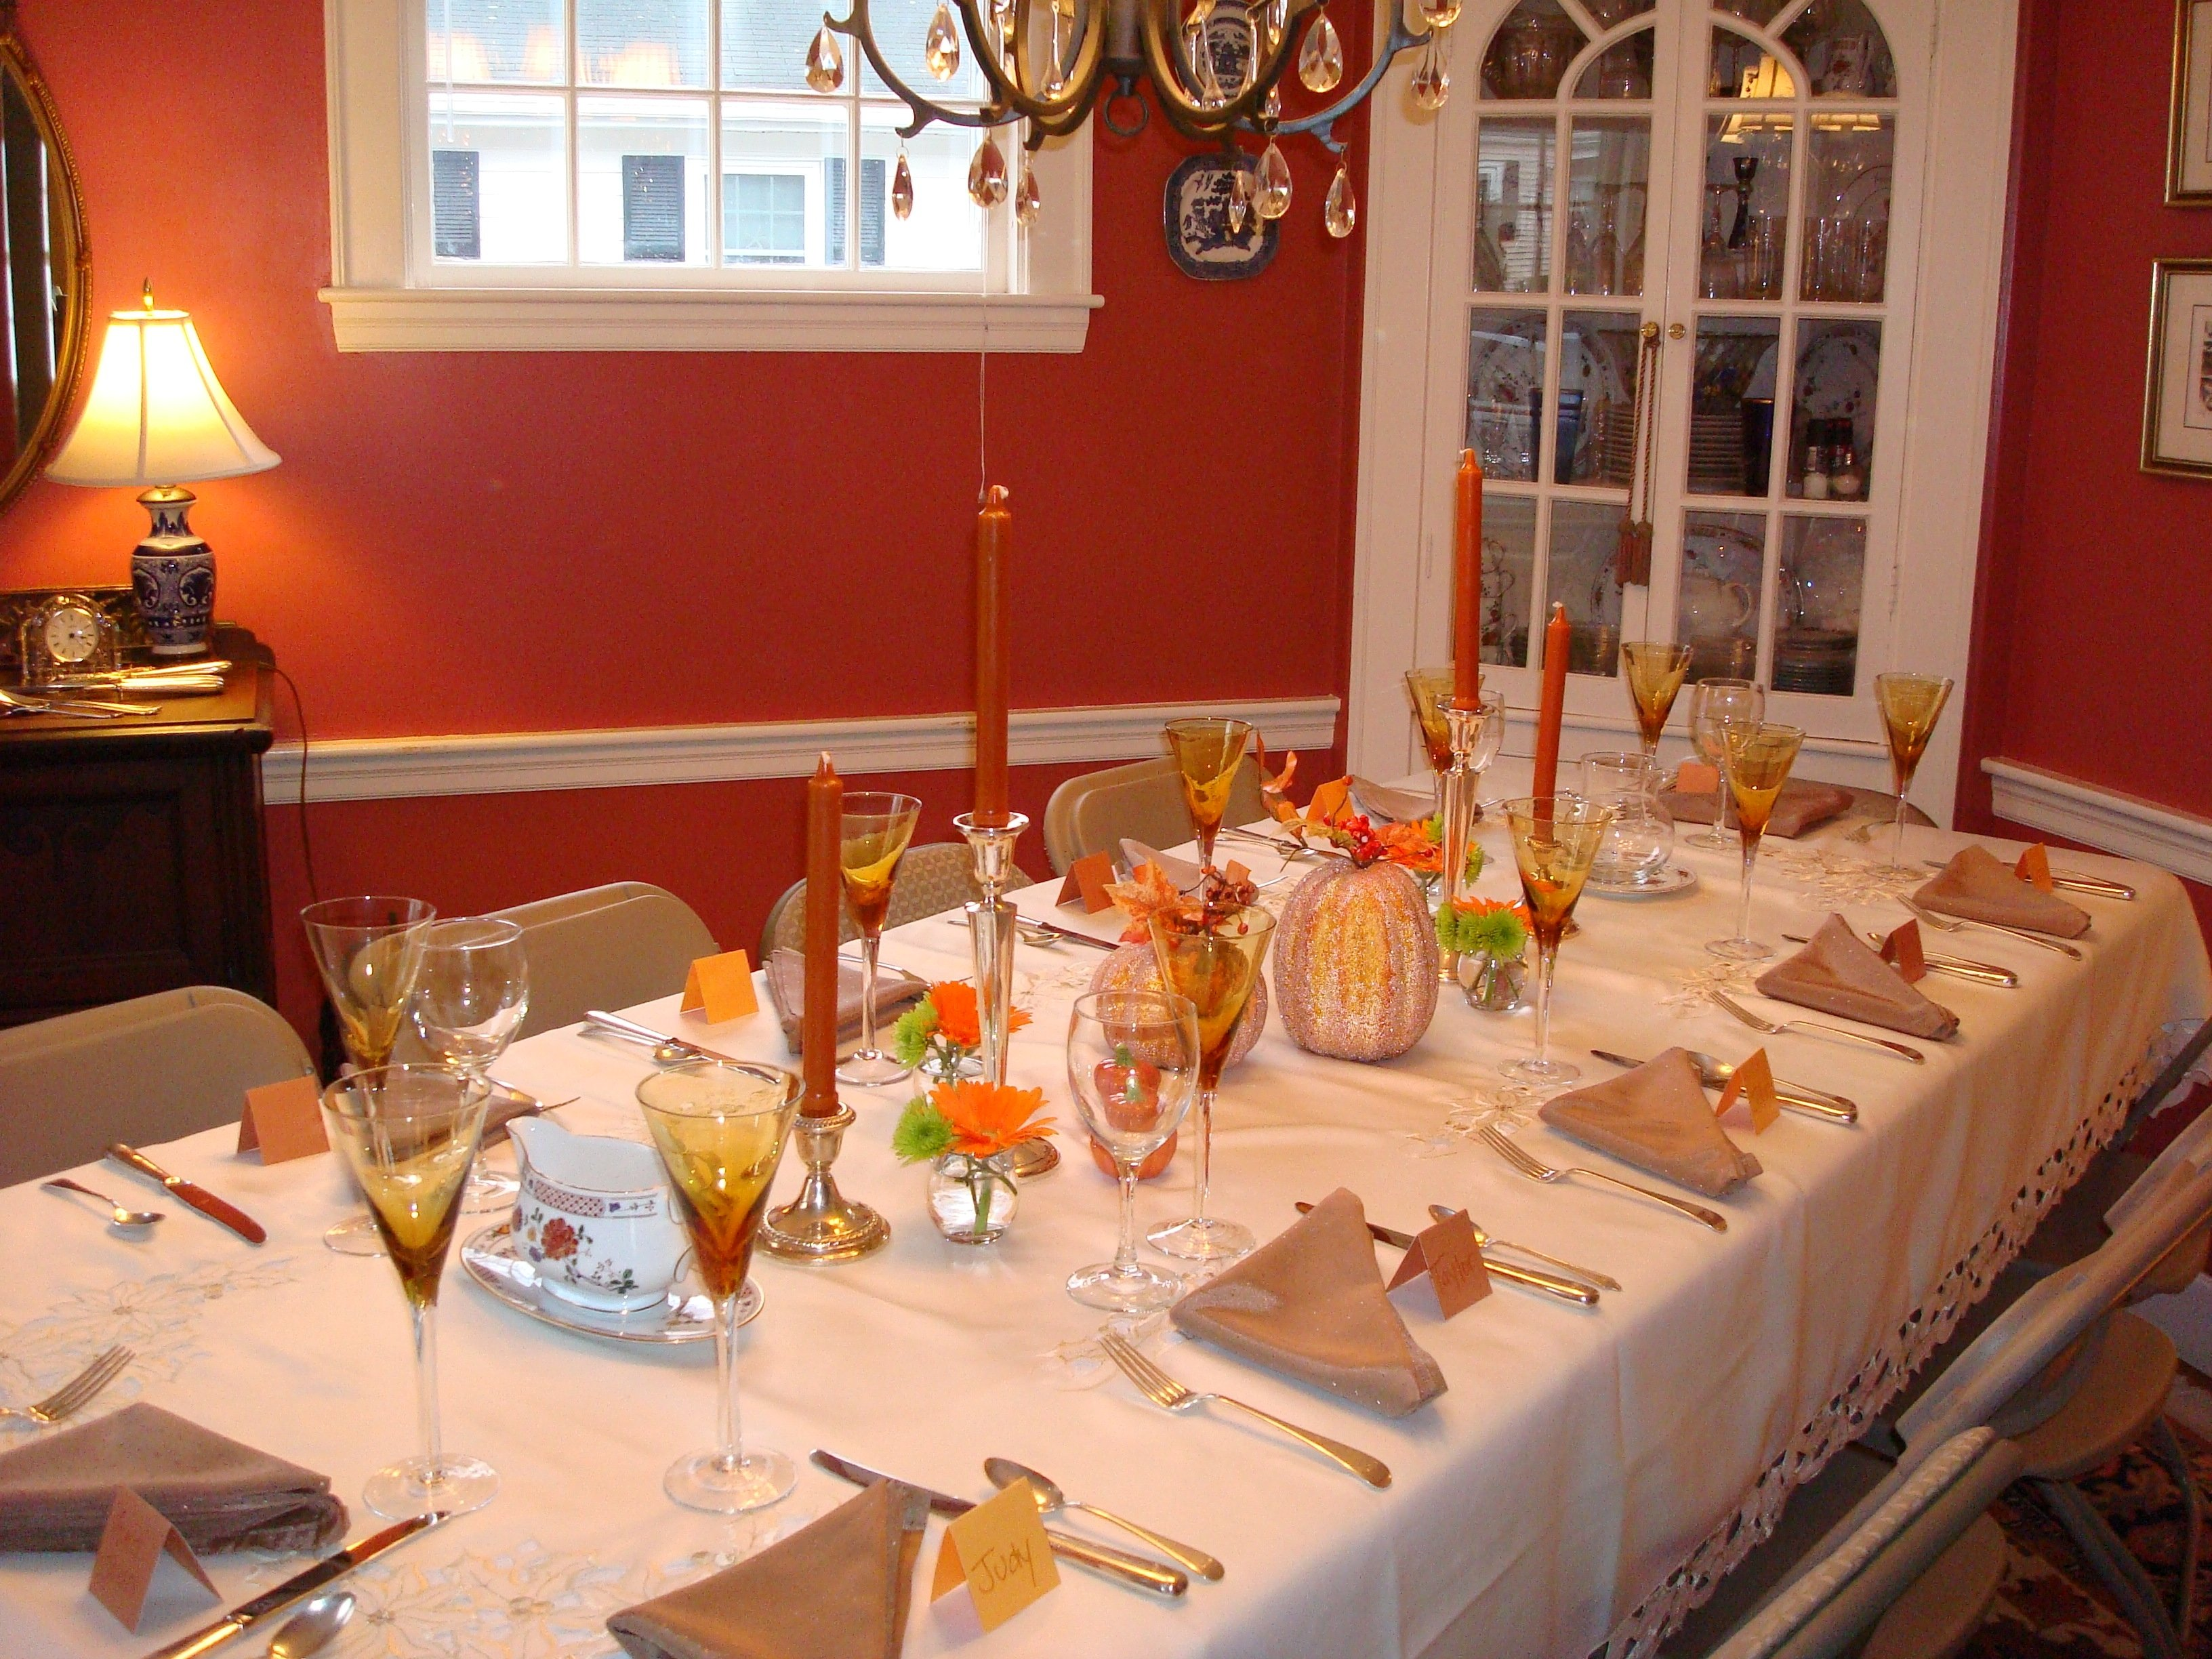 10 Attractive Table Setting Ideas For Thanksgiving furniture nice thanksgiving table settings design ideas awesome 2021